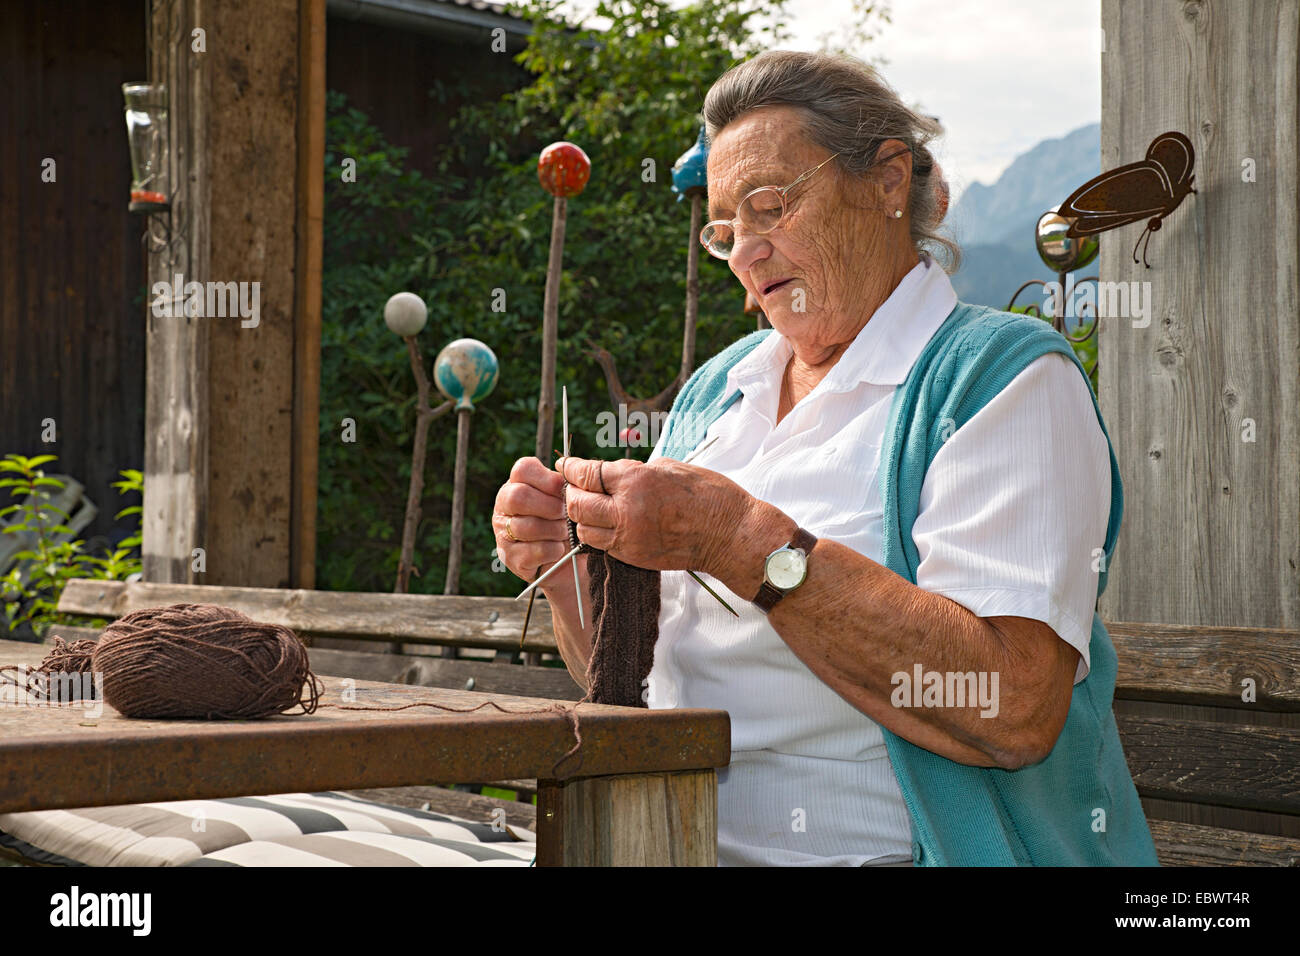 Farmer working on the farm, knitting leg warmers, Kreutner family farm, Schwaz District, Tyrol, Austria Family - Stock Image